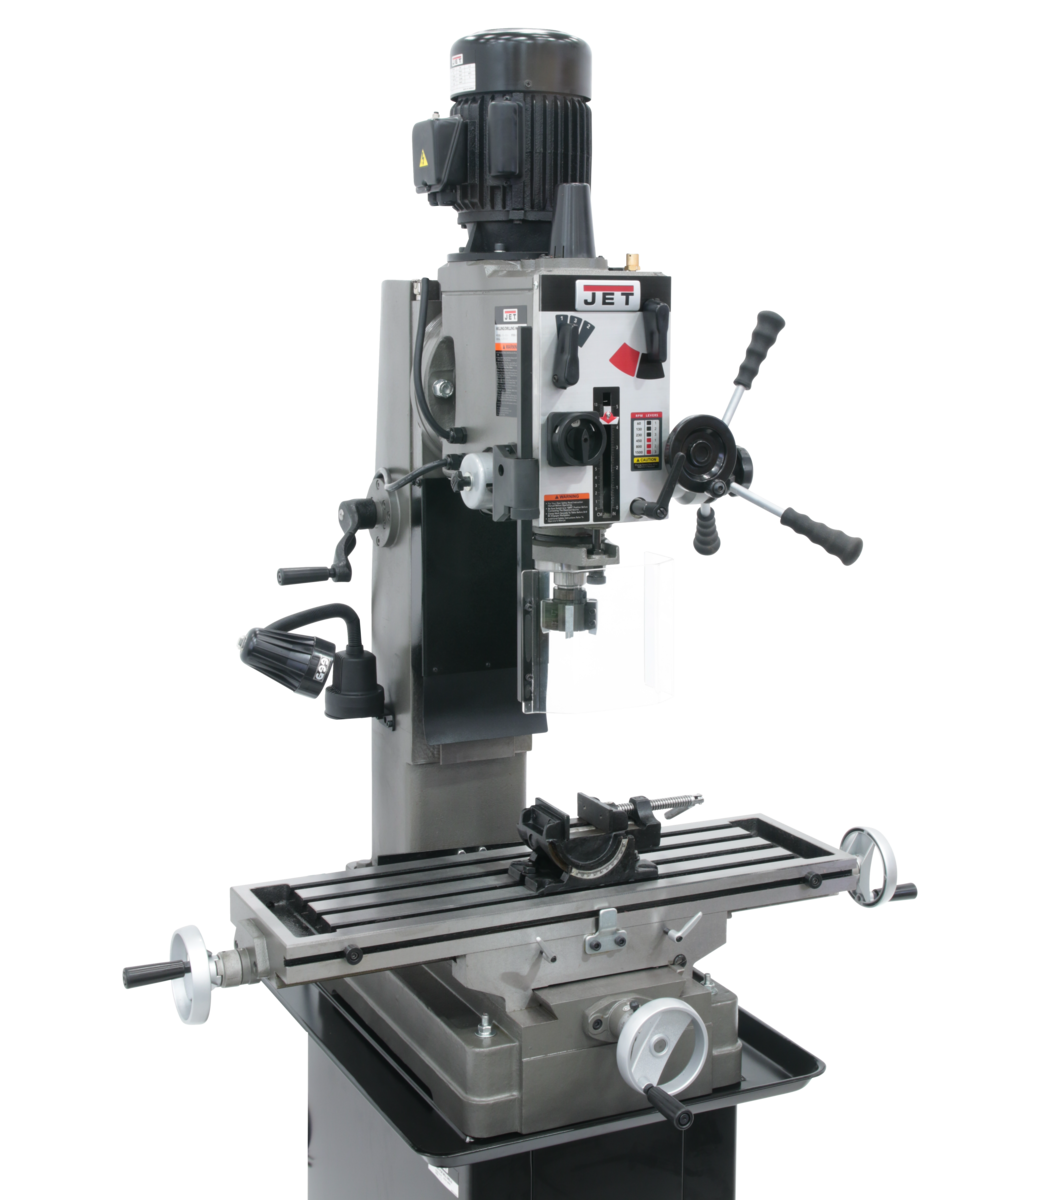 JMD-45GH Geared Head Square Column Mill/Drill with Newall DP700 2-Axis DRO & X-Powerfeed